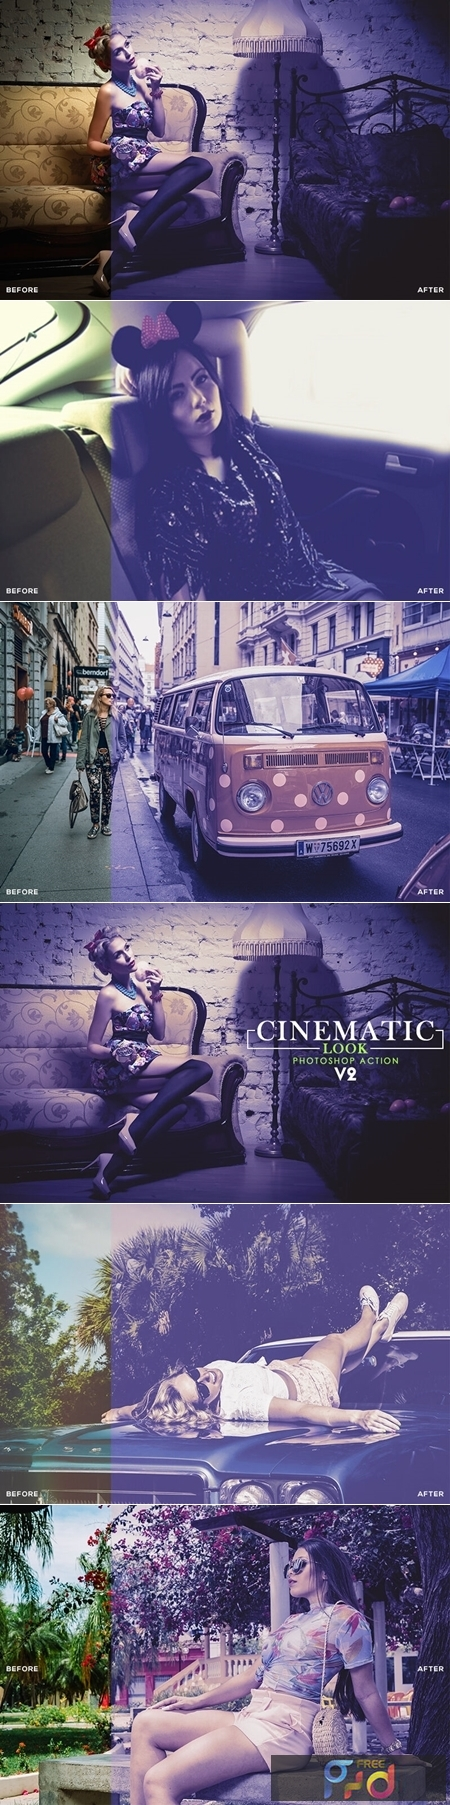 Cinematic Look Photoshop Action V2 3602574 1